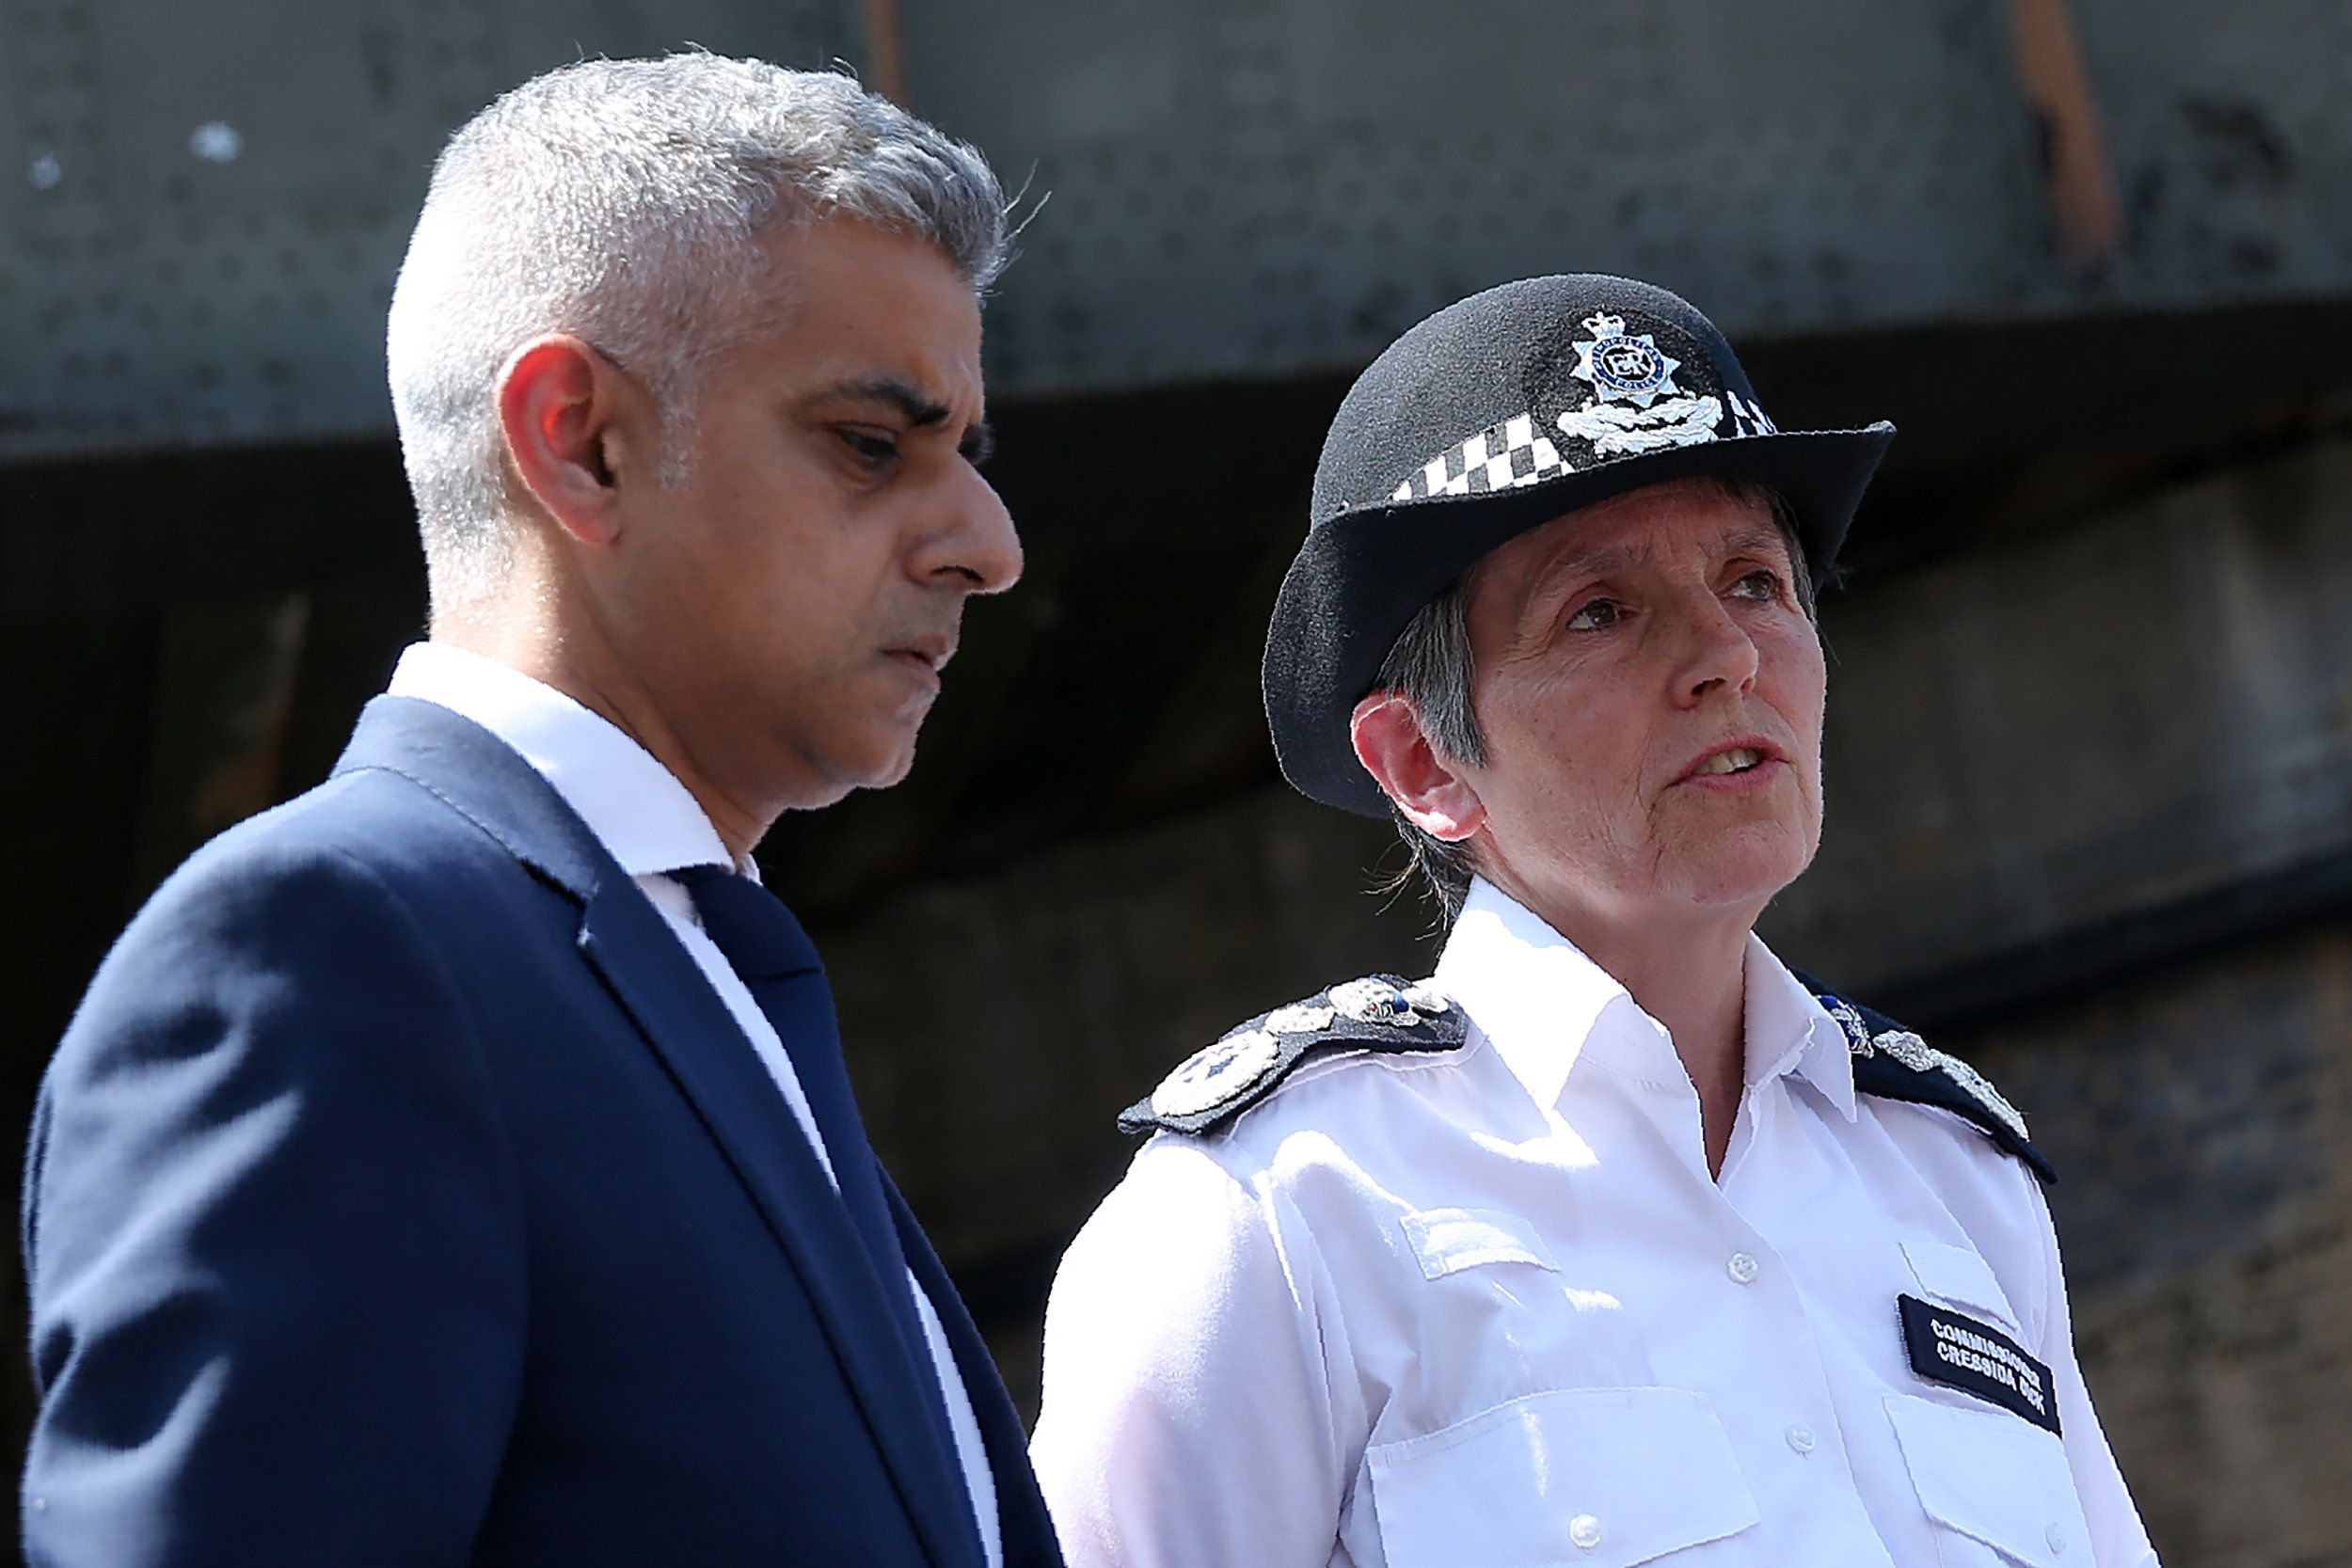 Sadiq Khan Gives Powerful Finsbury Park Speech After 'Terrible Few Weeks For